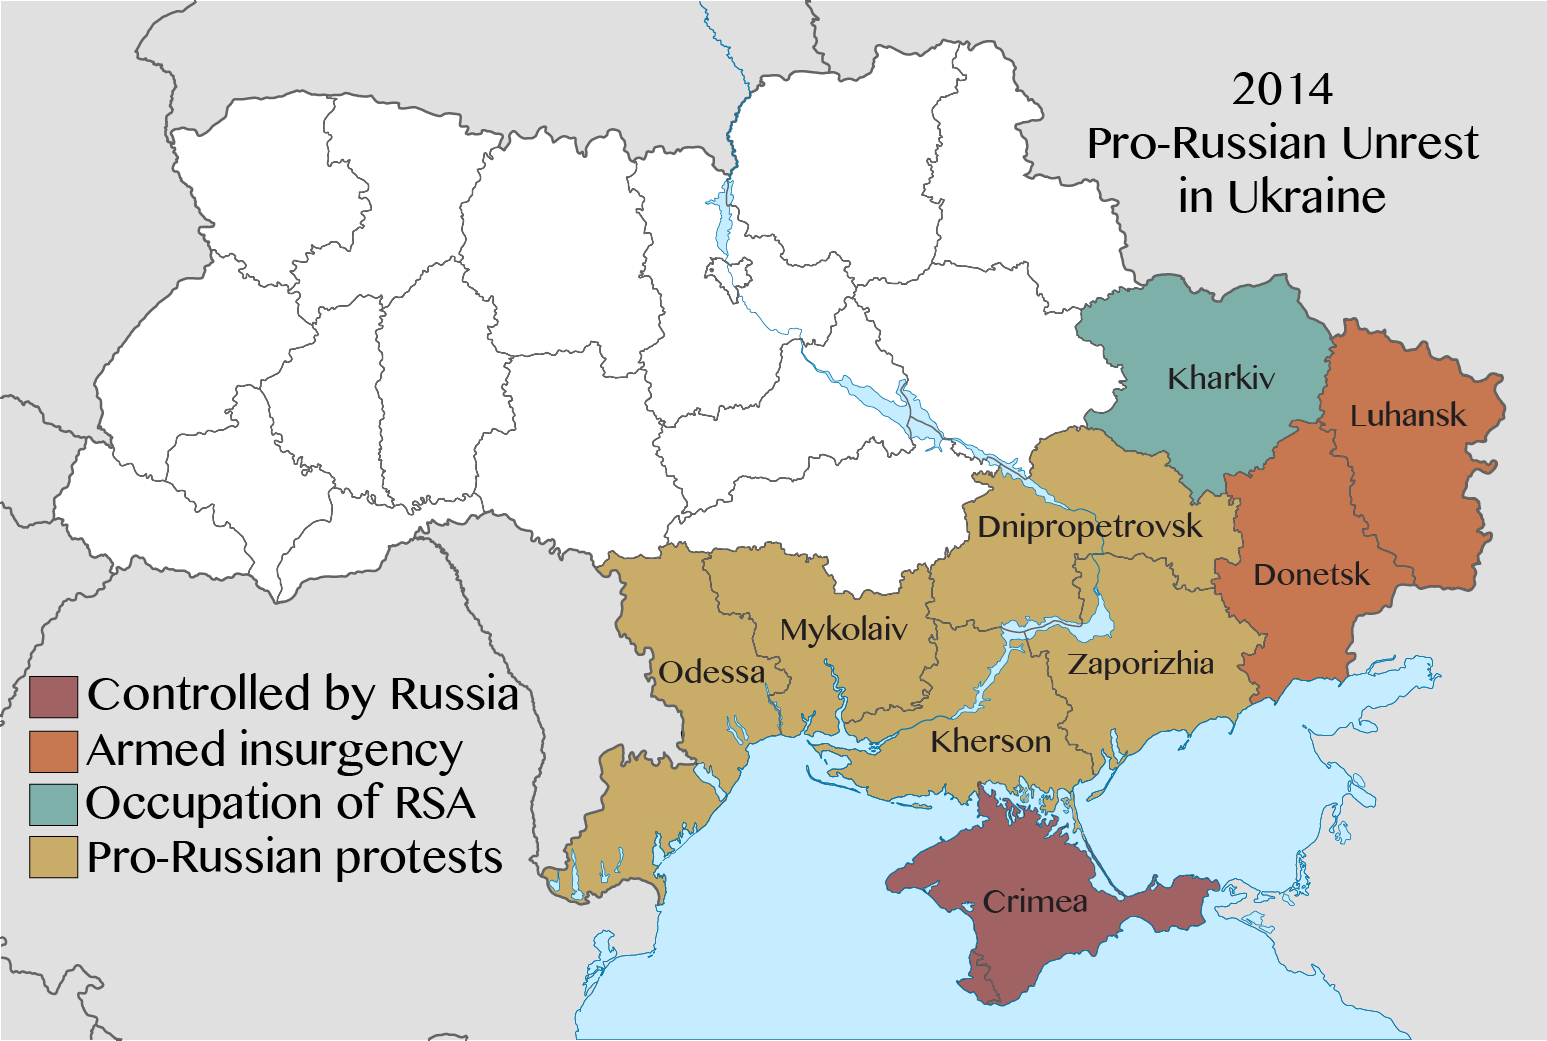 July 21, 1774 began the annexation of the Crimea to Russia